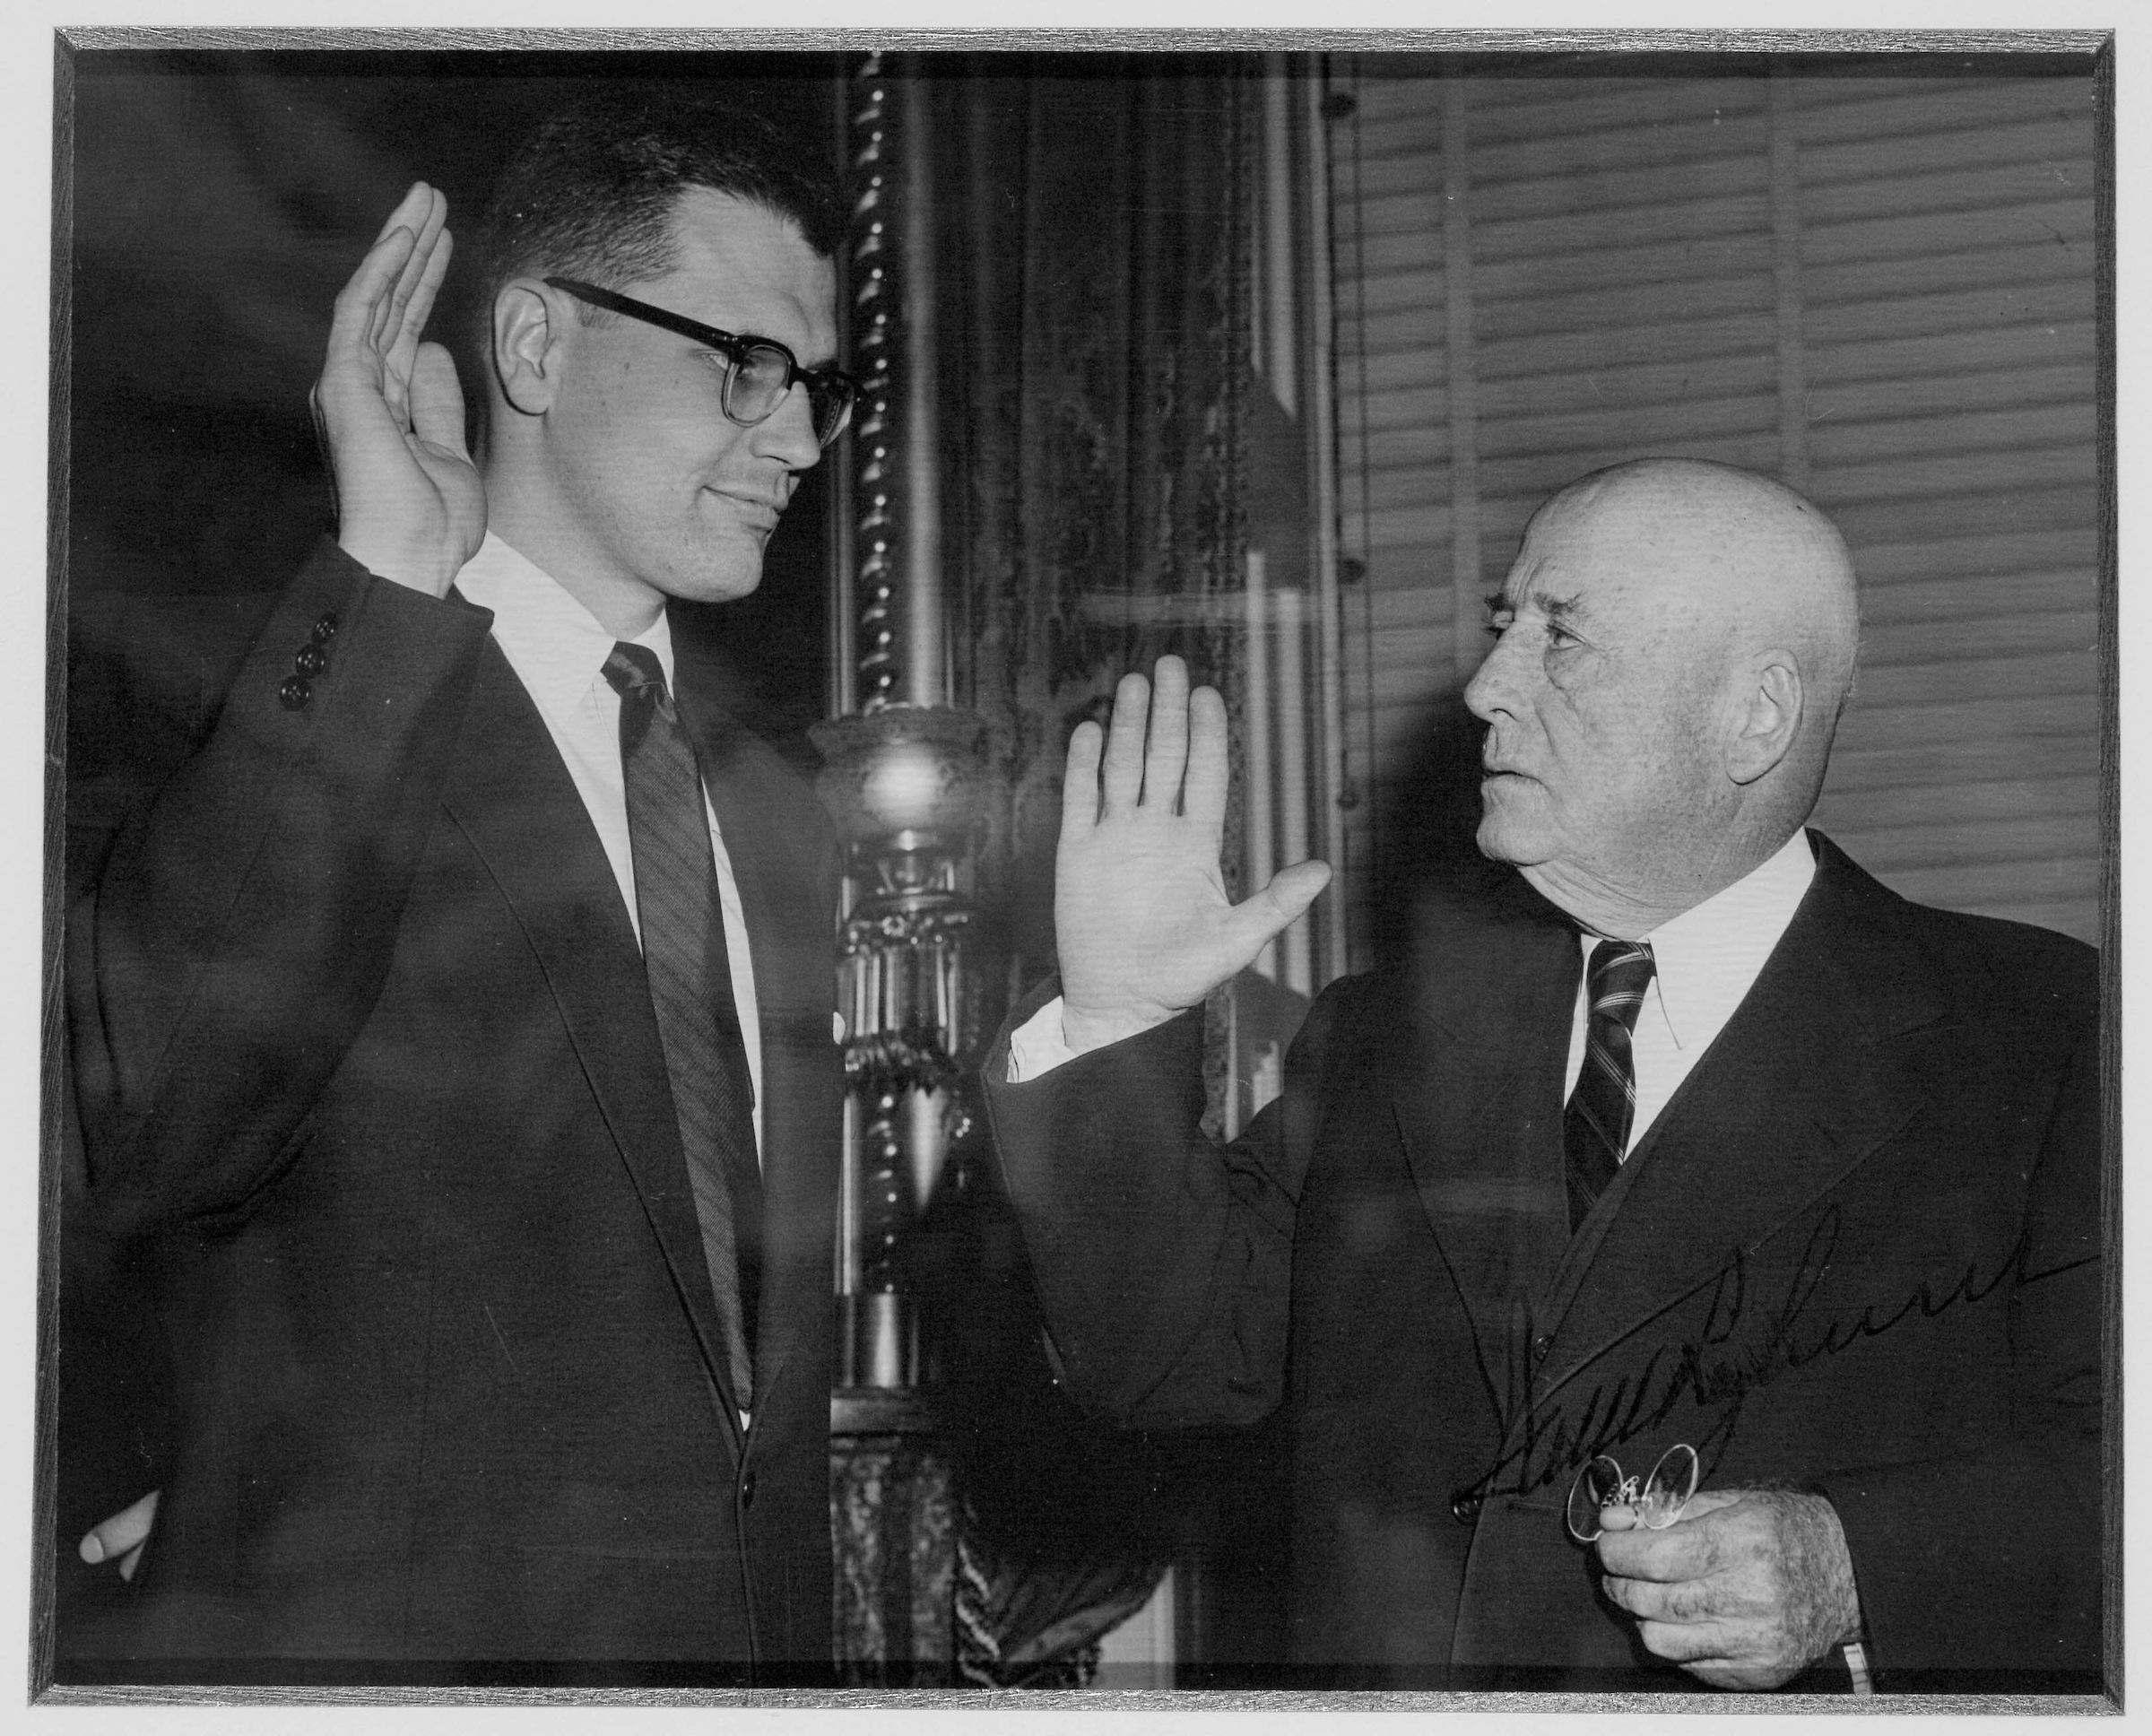 REP. JOHN D. DINGELL--Congressman John D. Dingell being sworn in by Speaker of the House Sam Rayburn in 1955..PHOTO COURTESY OF REP. JOHN D. DINGELL